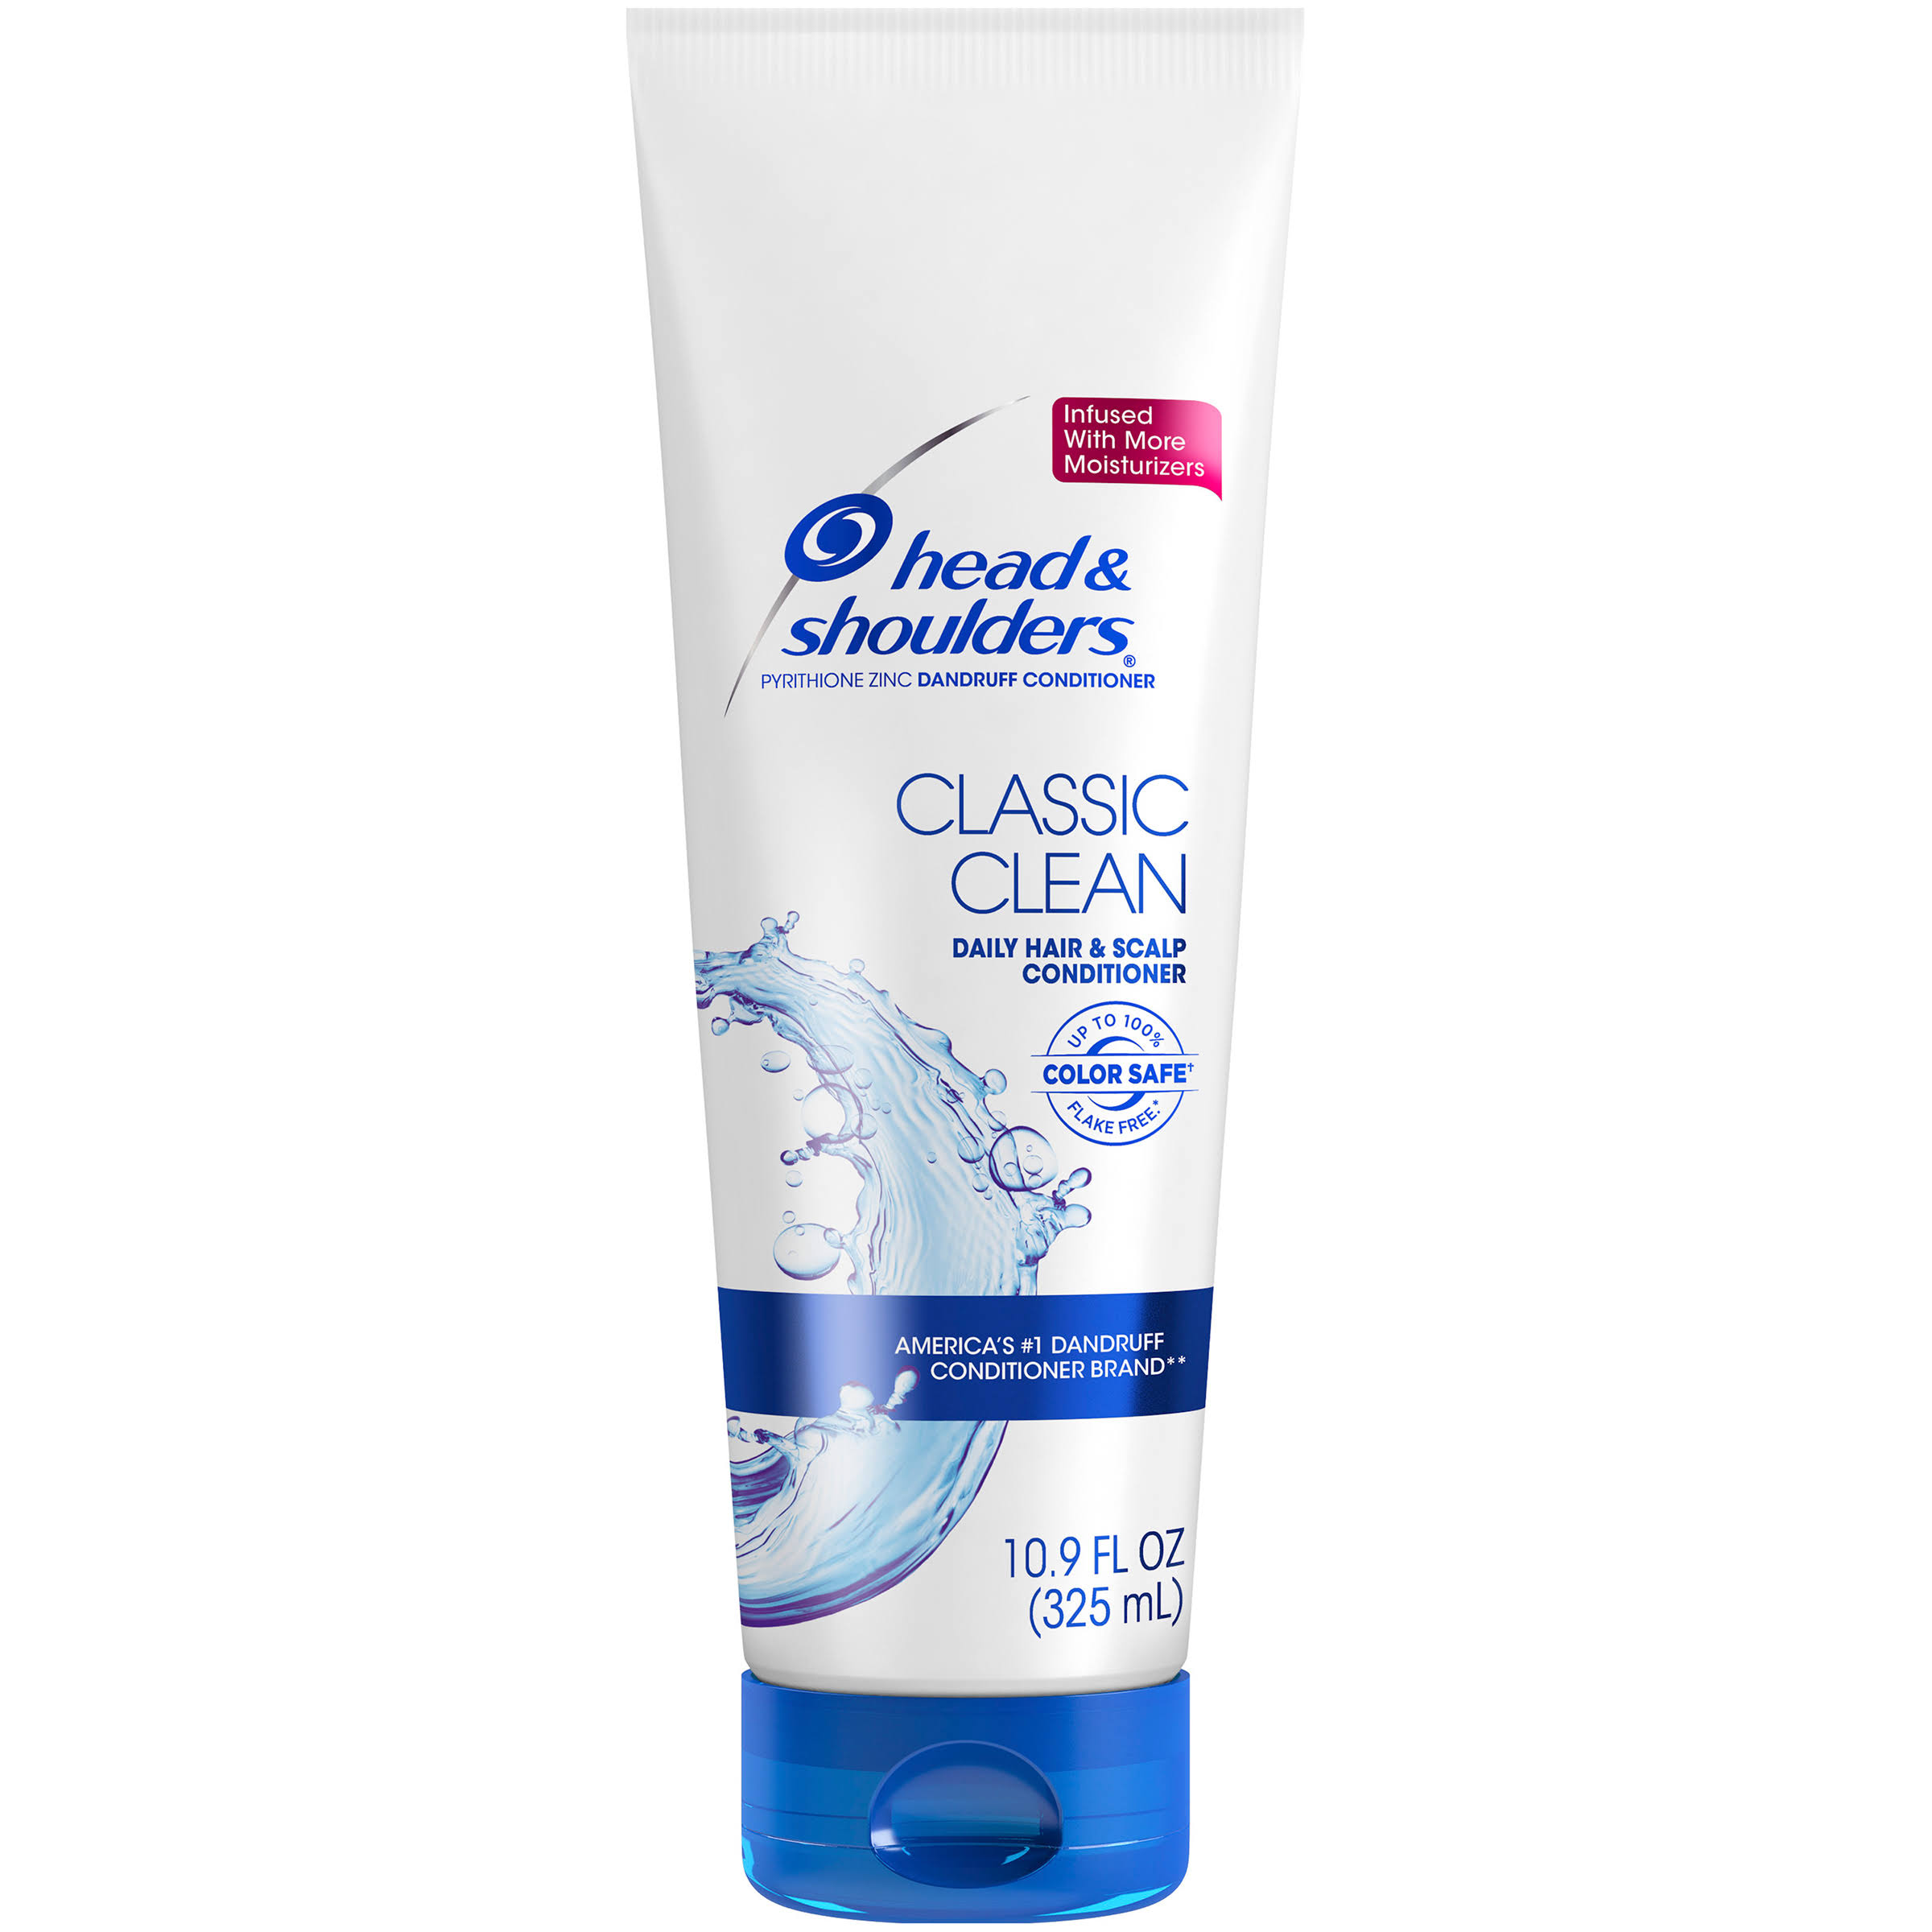 Head & Shoulders Classic Clean Anti-Dandruff Conditioner - 10.9 fl oz